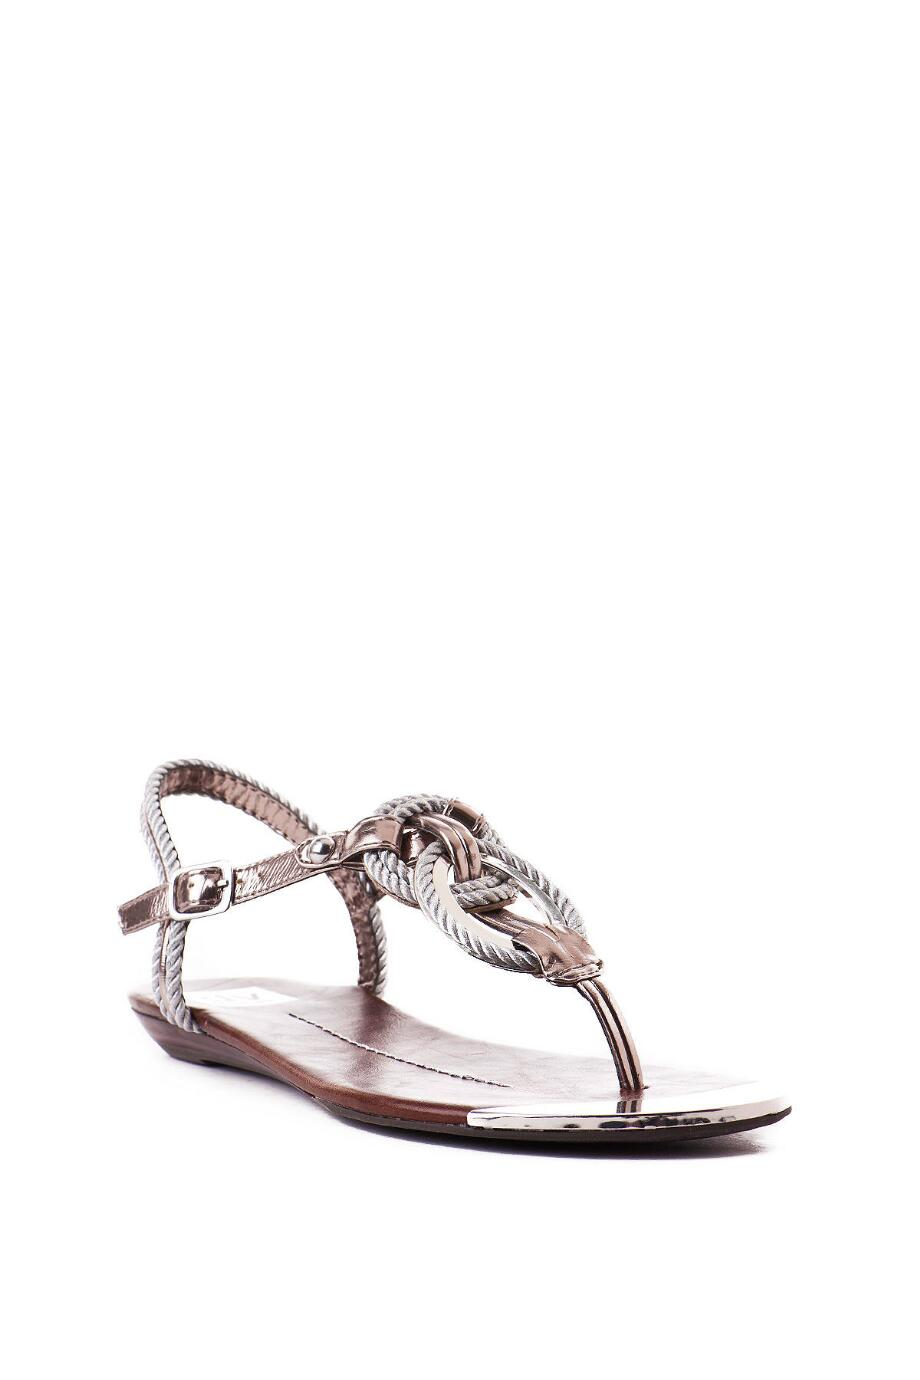 DV by Dolce Vita Shoes, Agnyss Metallic Sandal